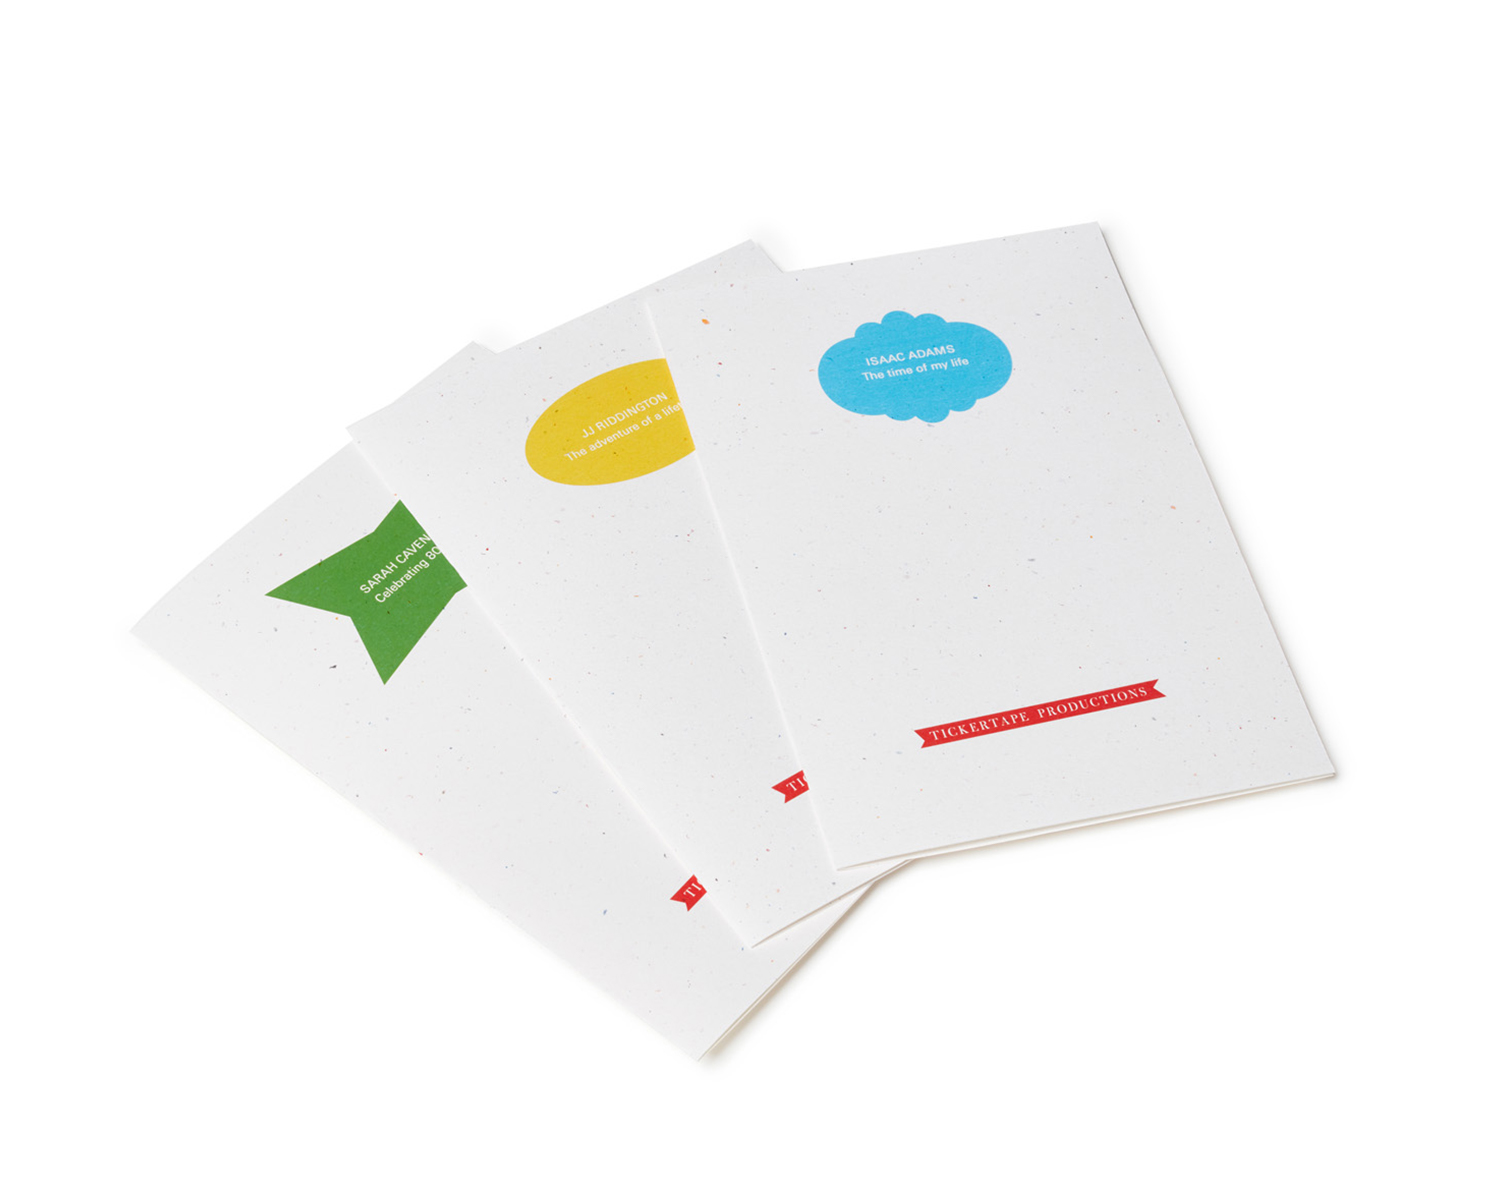 Some of the cover designs for Spoken Portrait paper inserts and folders